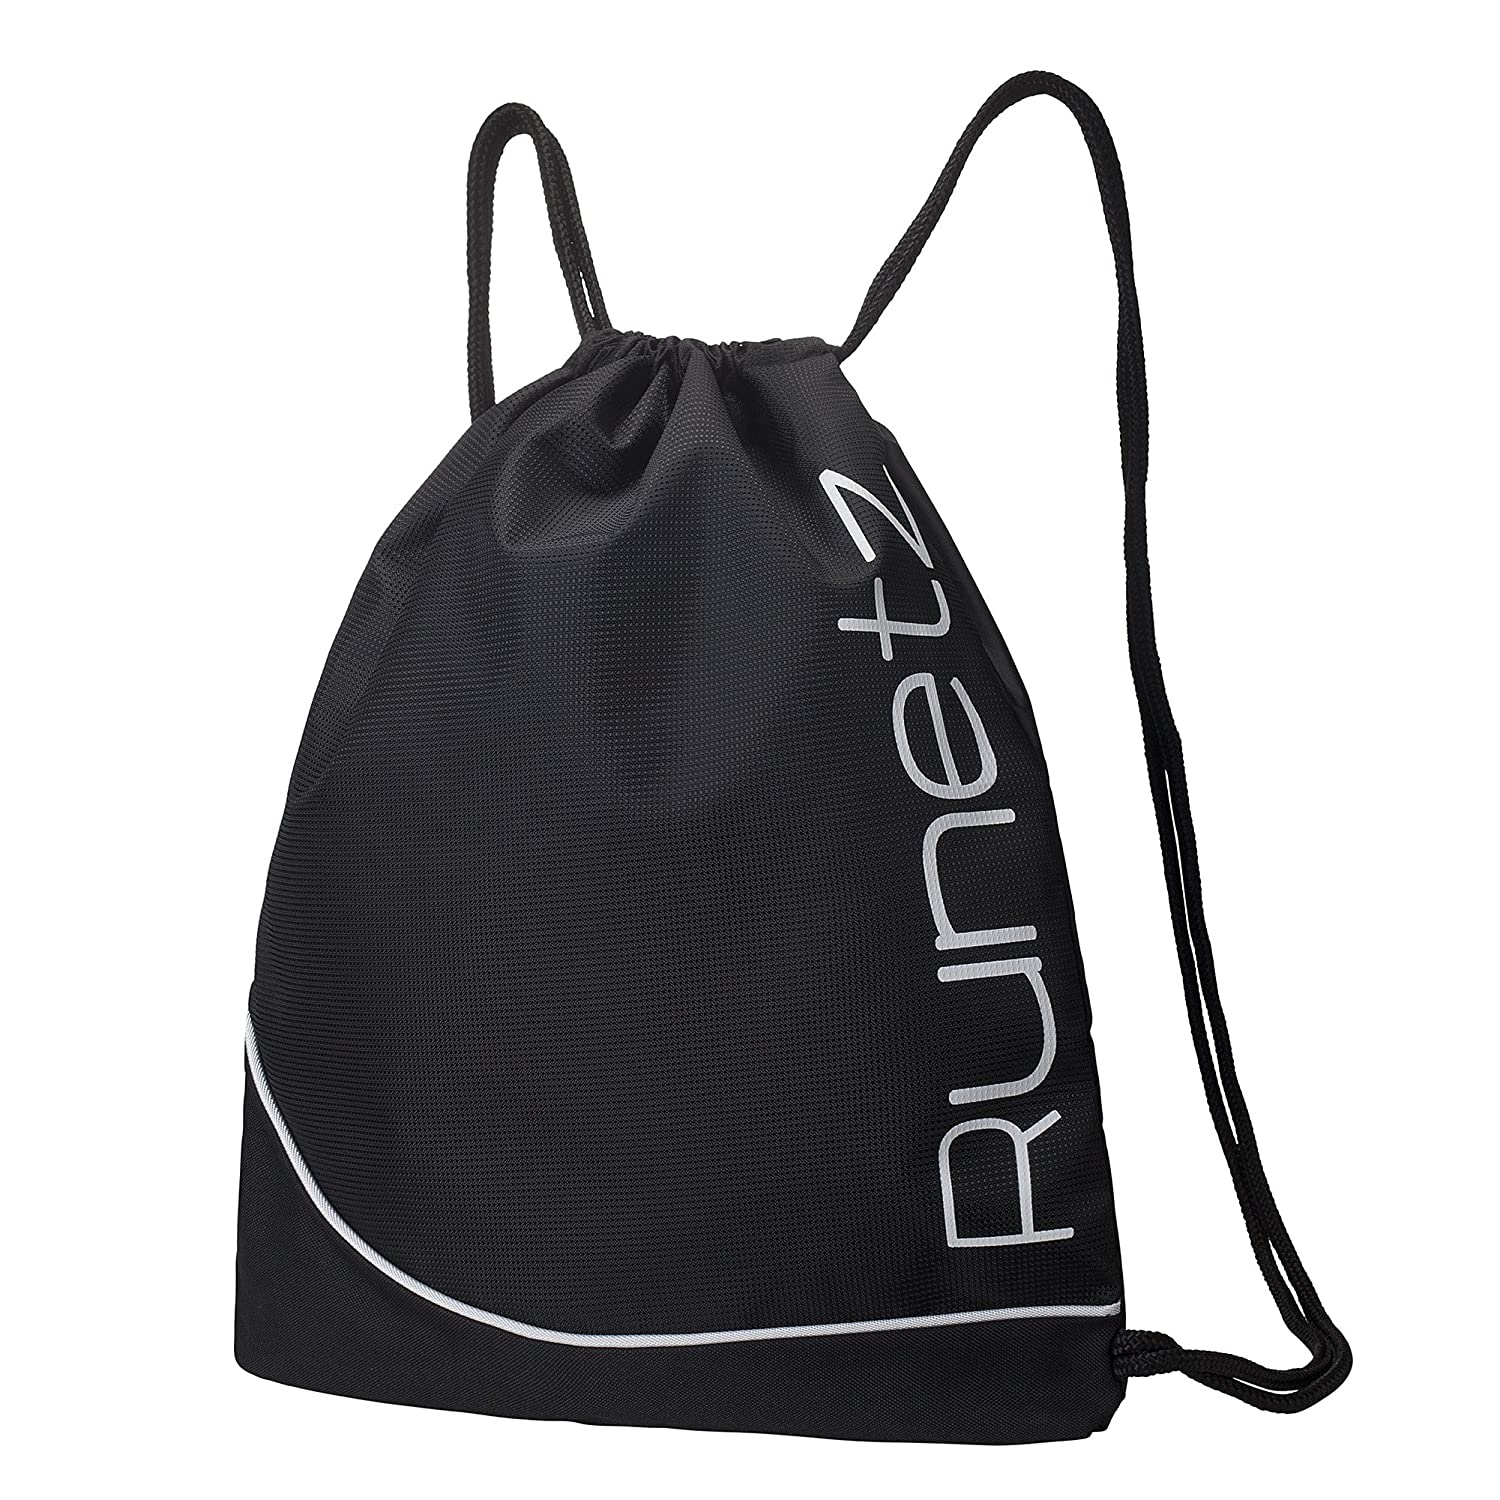 Amazon.com: Runetz - BLACK Gym Sack Bag Drawstring Backpack Sport ...